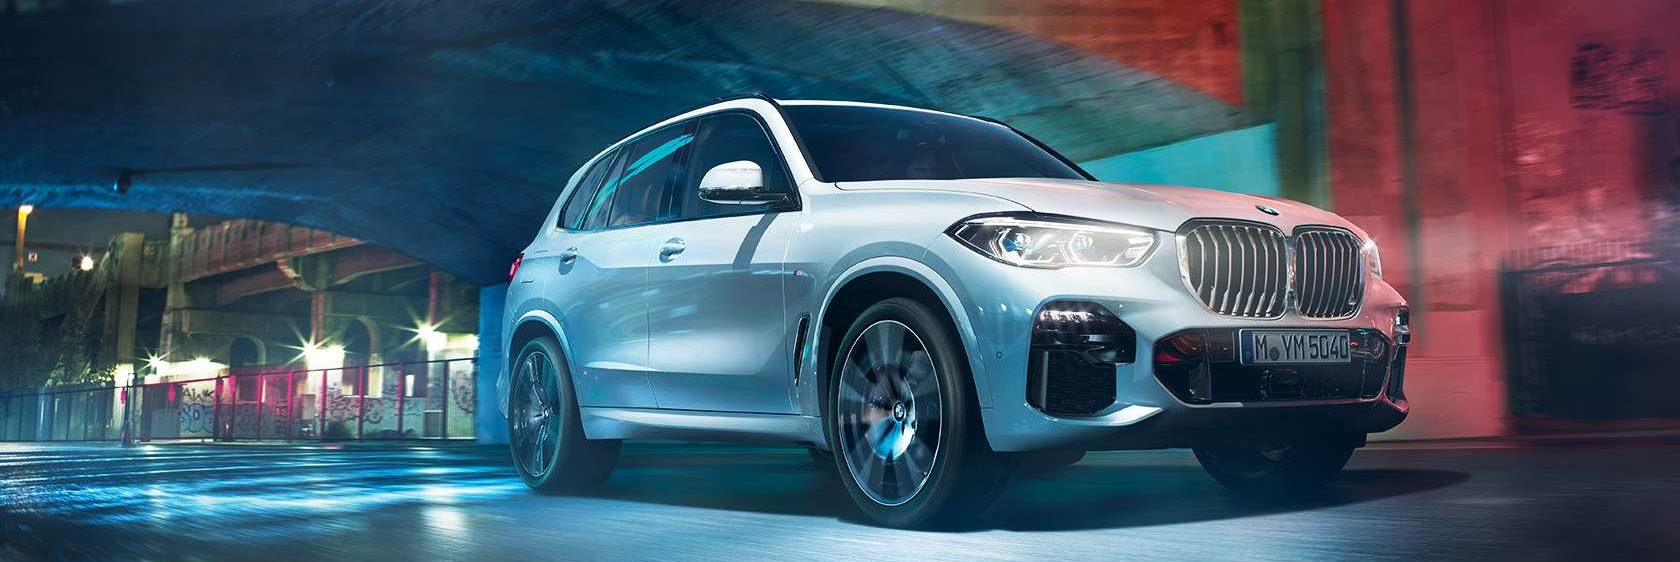 BMW X5 driving at night under a bridge in the city